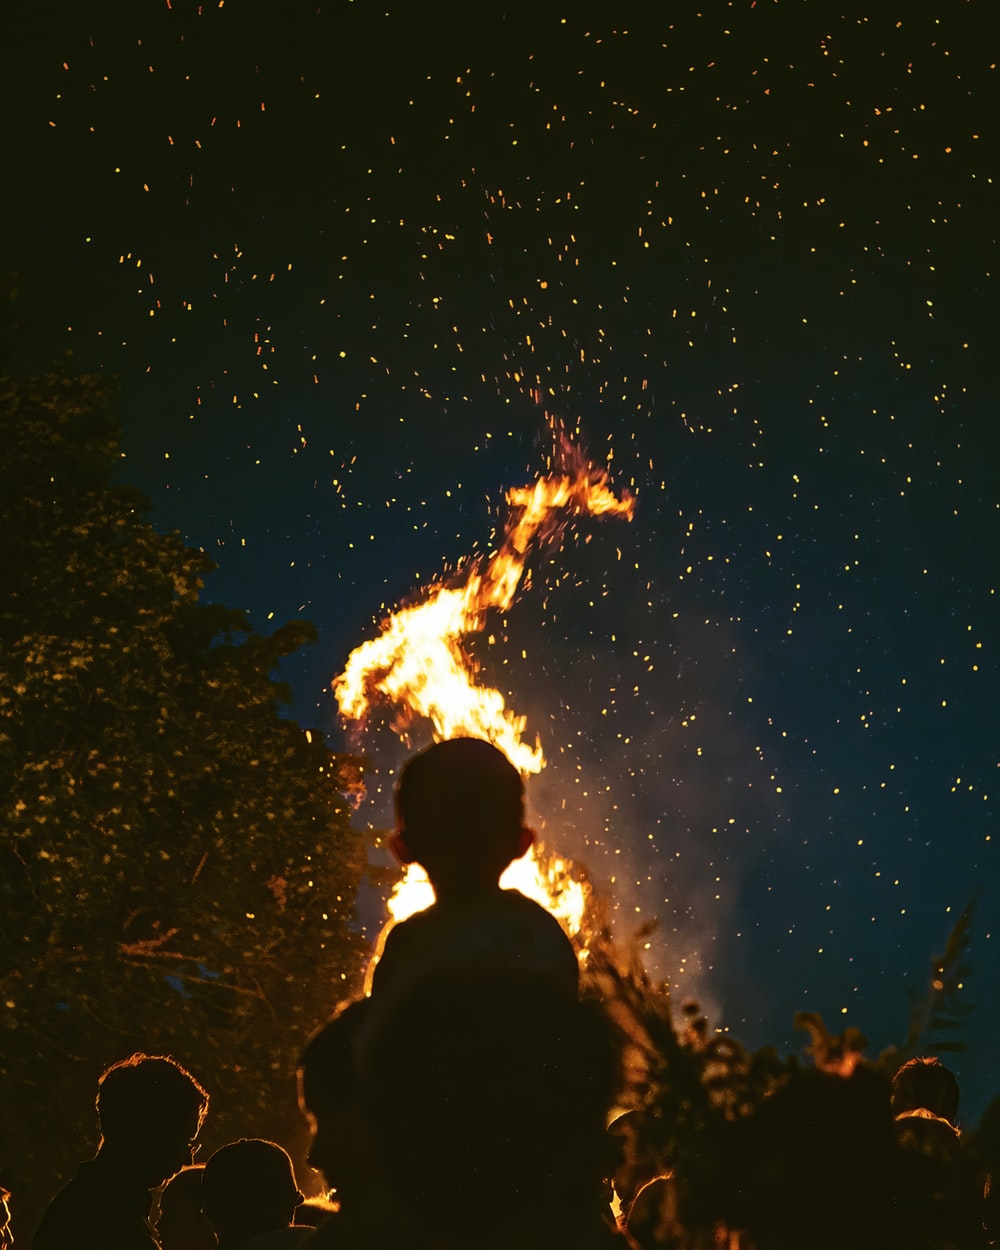 silhouette of people looking on fire under starry night